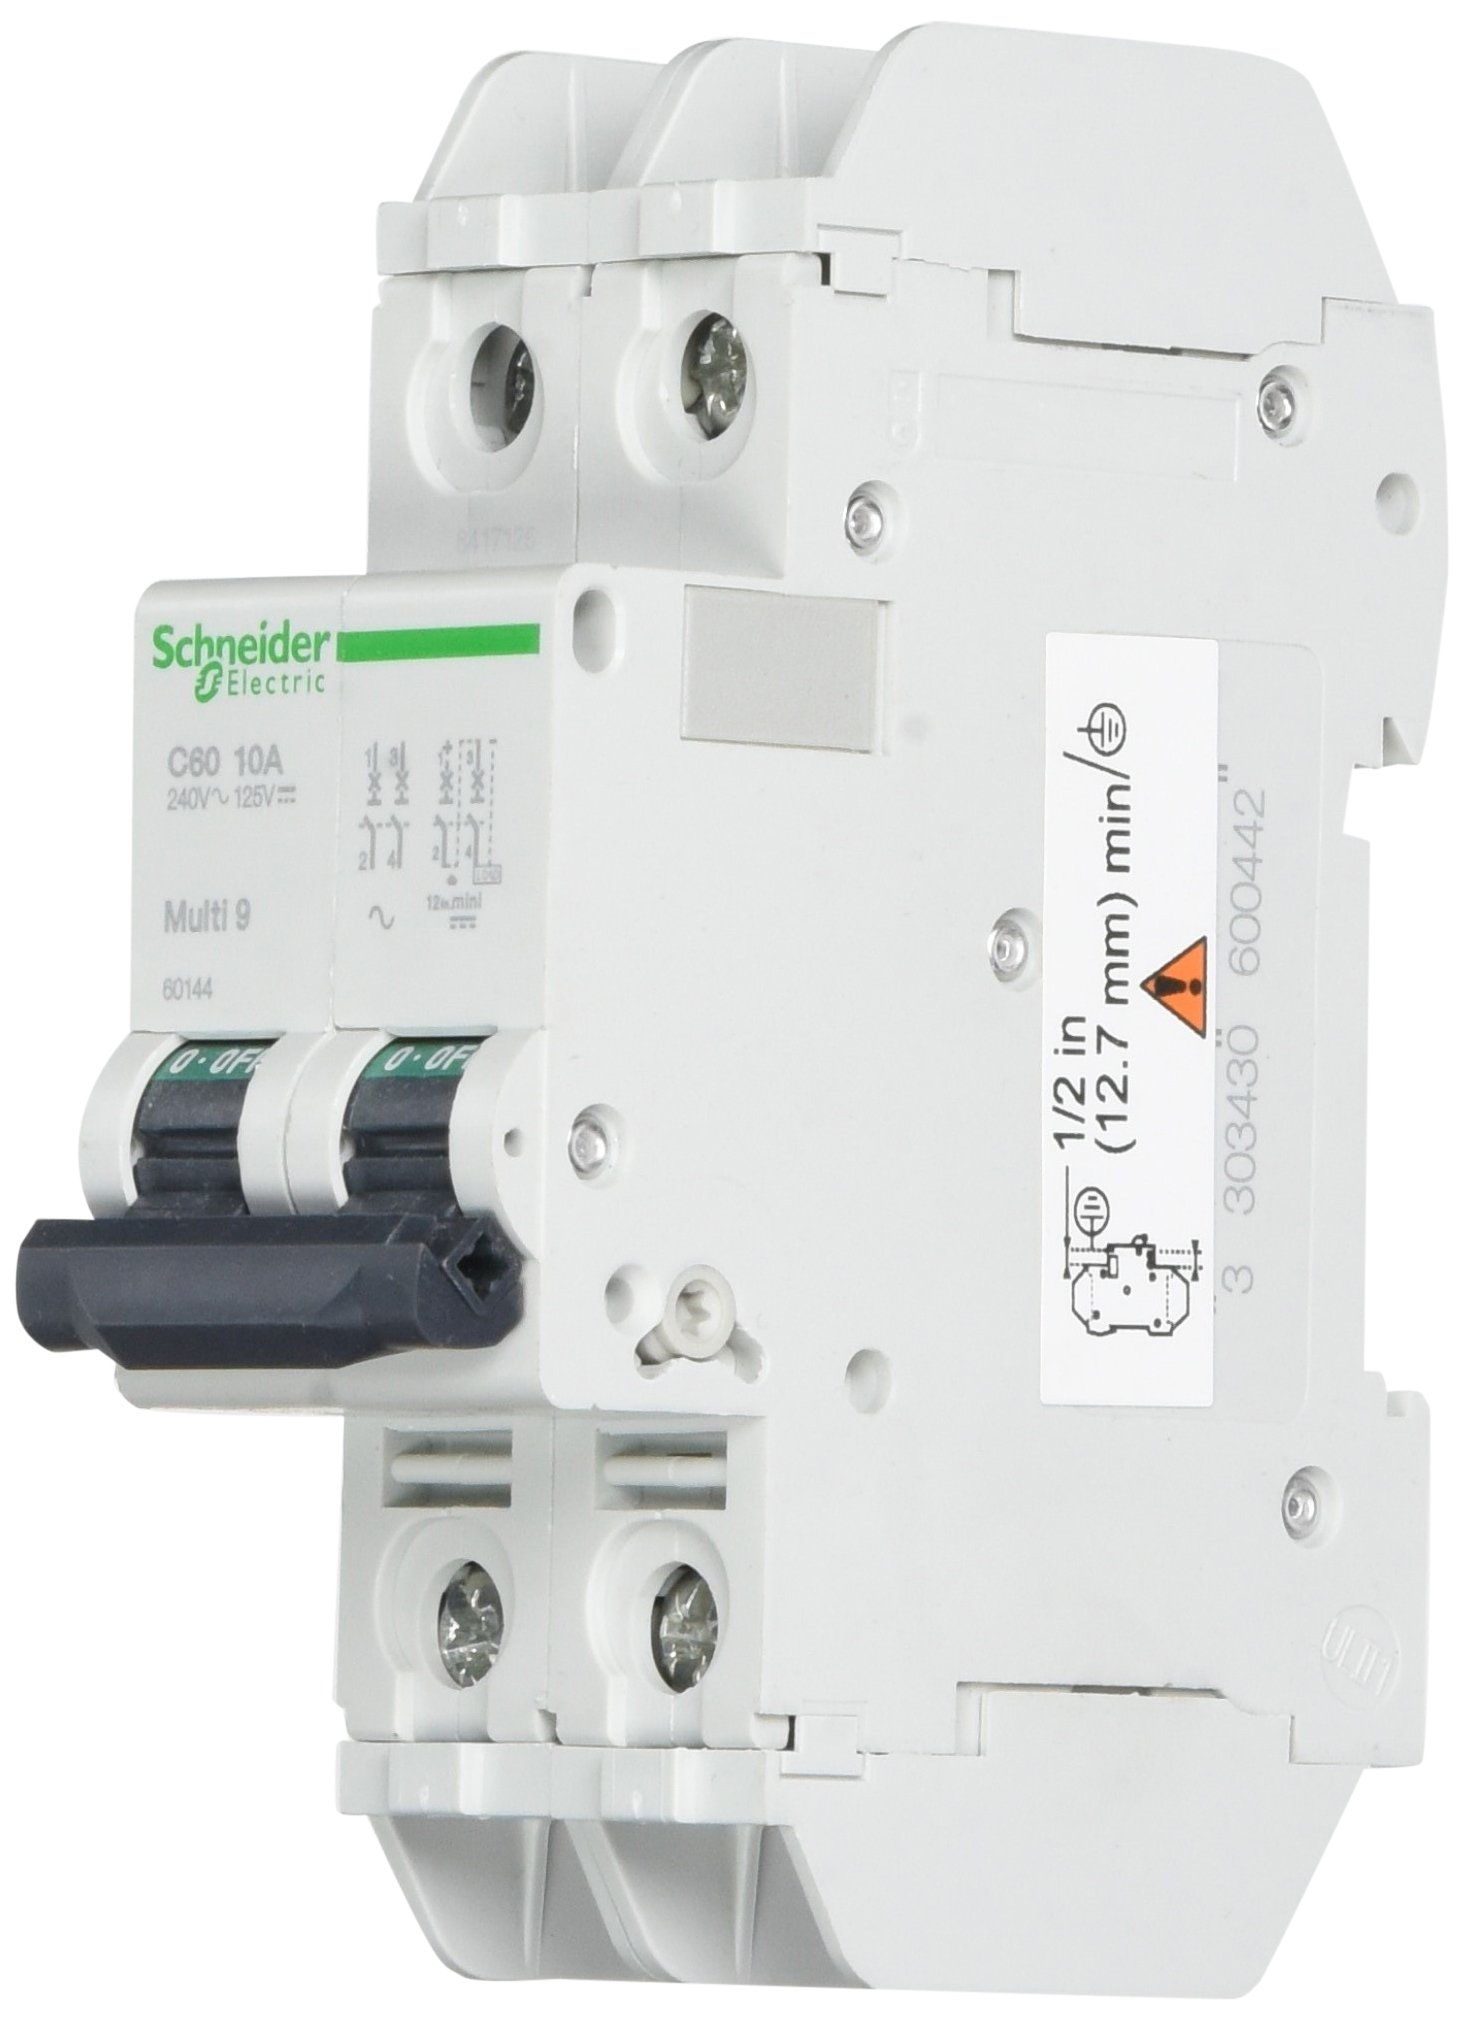 SCHNEIDER ELECTRIC 60144 Miniature Circuit Breaker 240-Volt 10-Amp